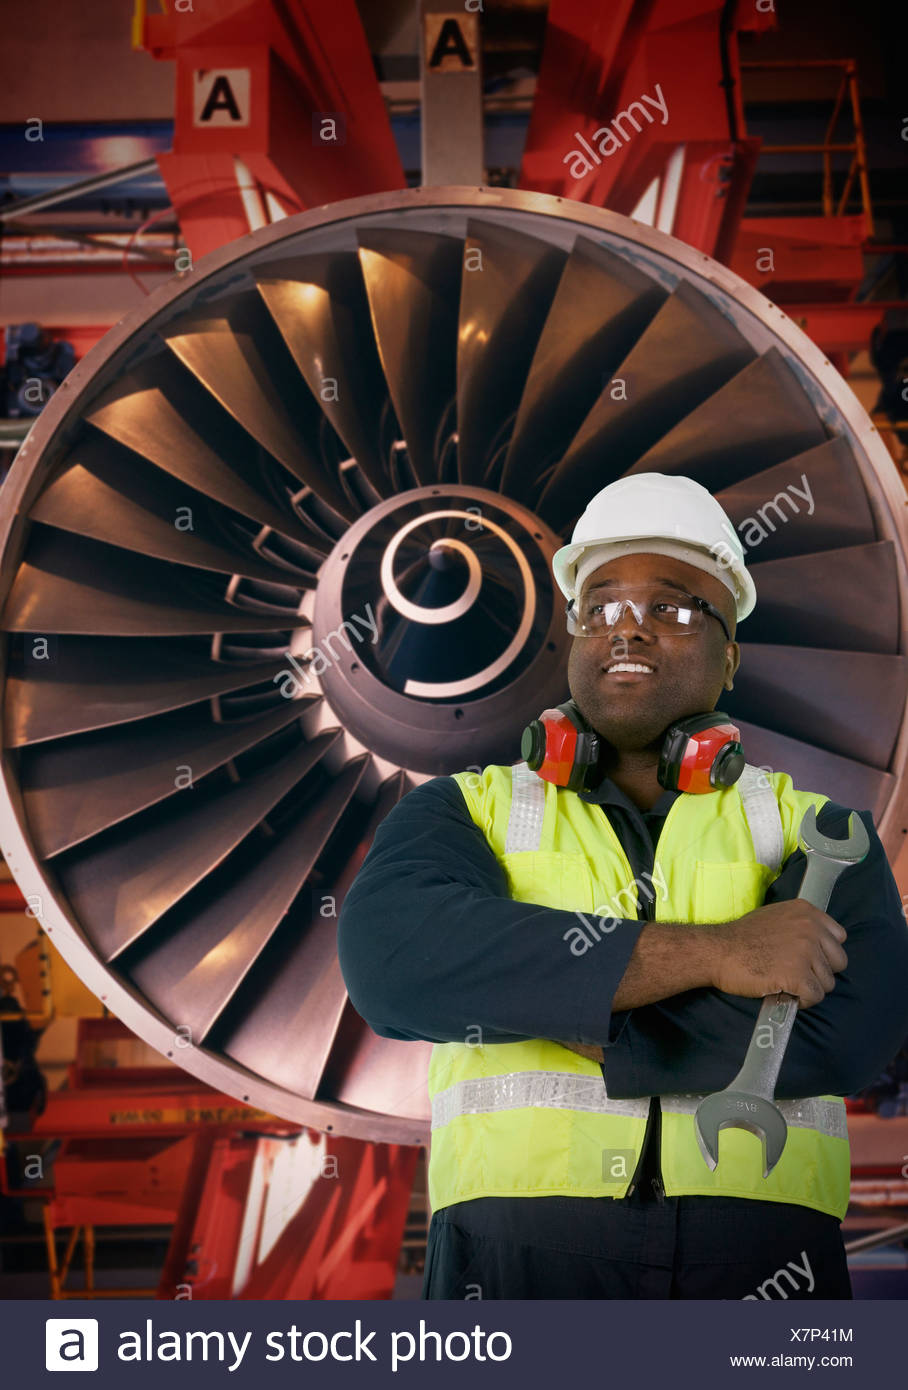 Aeronautic engineer standing in front of an airplane engine - Stock Image